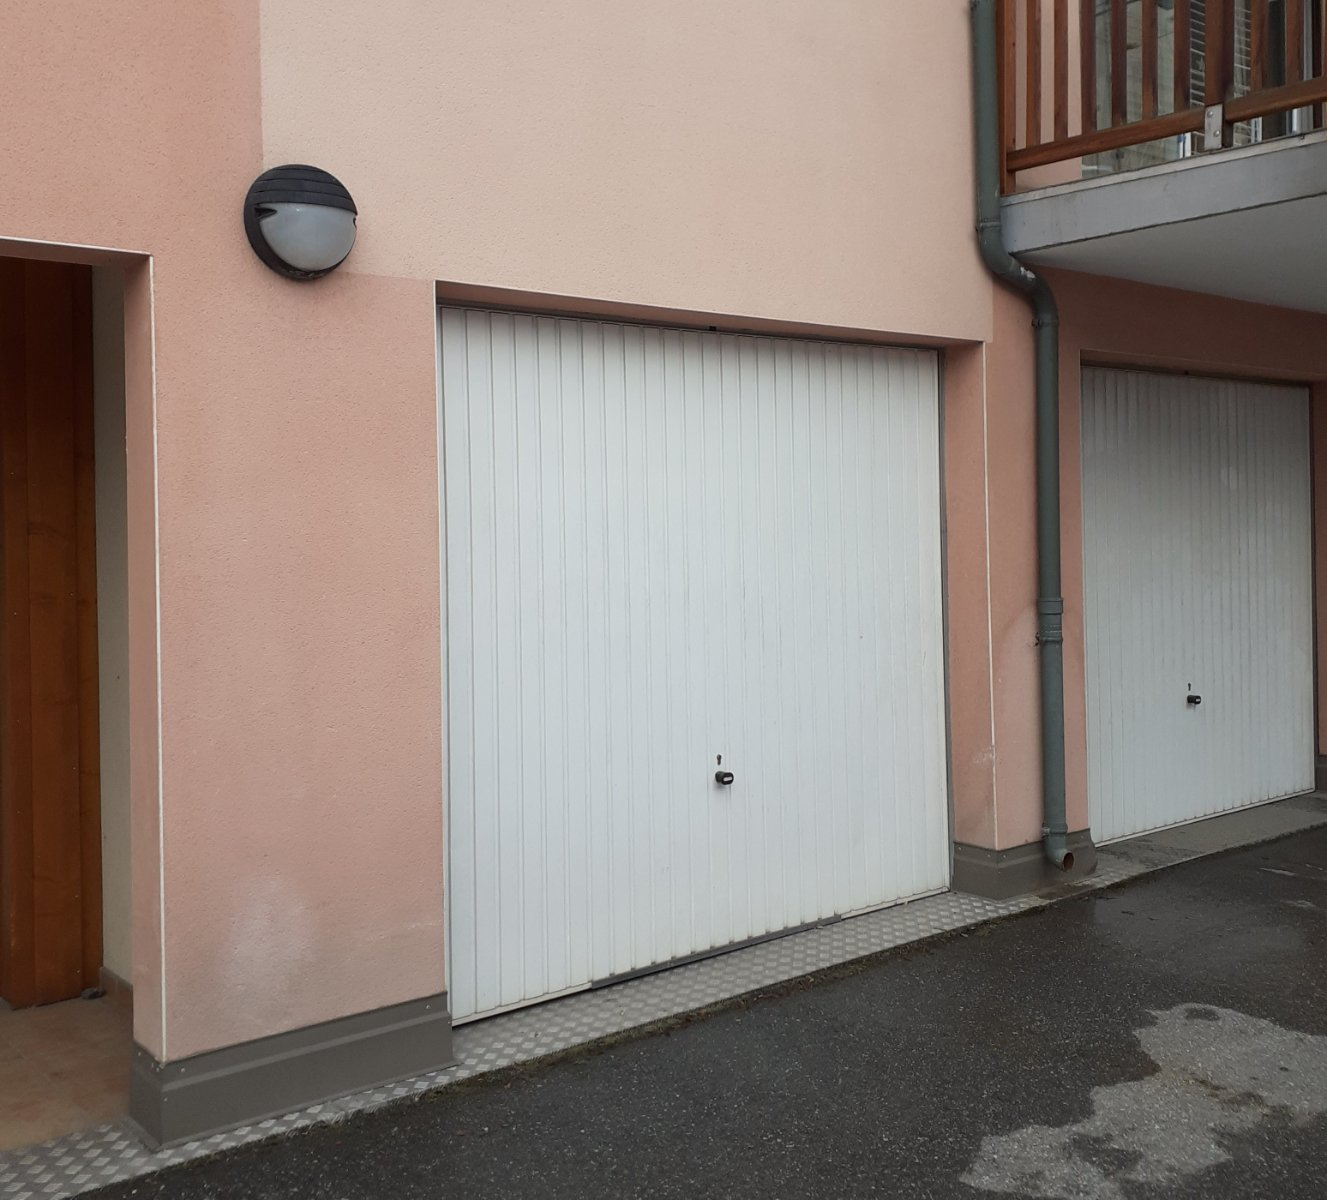 GARAGE TO RENT - BRIANCON - 96 € including tenant fees